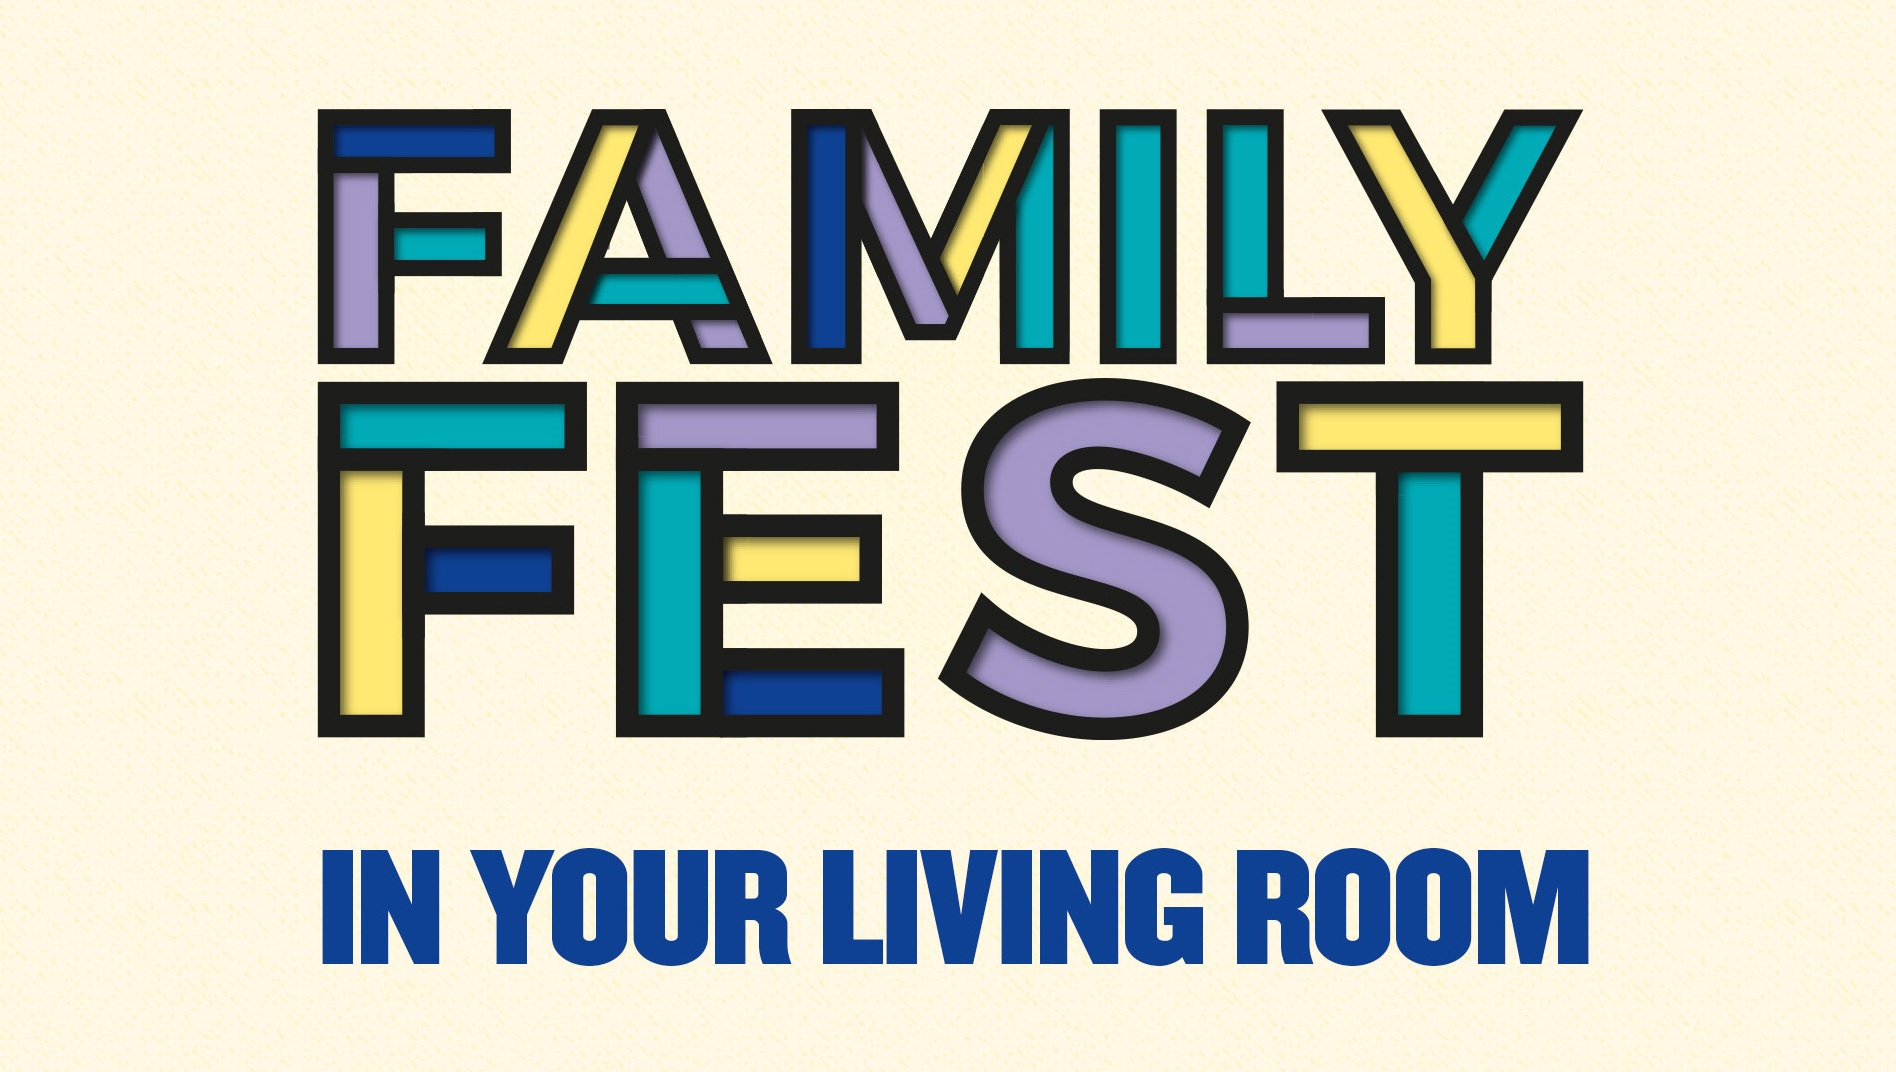 Family Fest in your Living Room